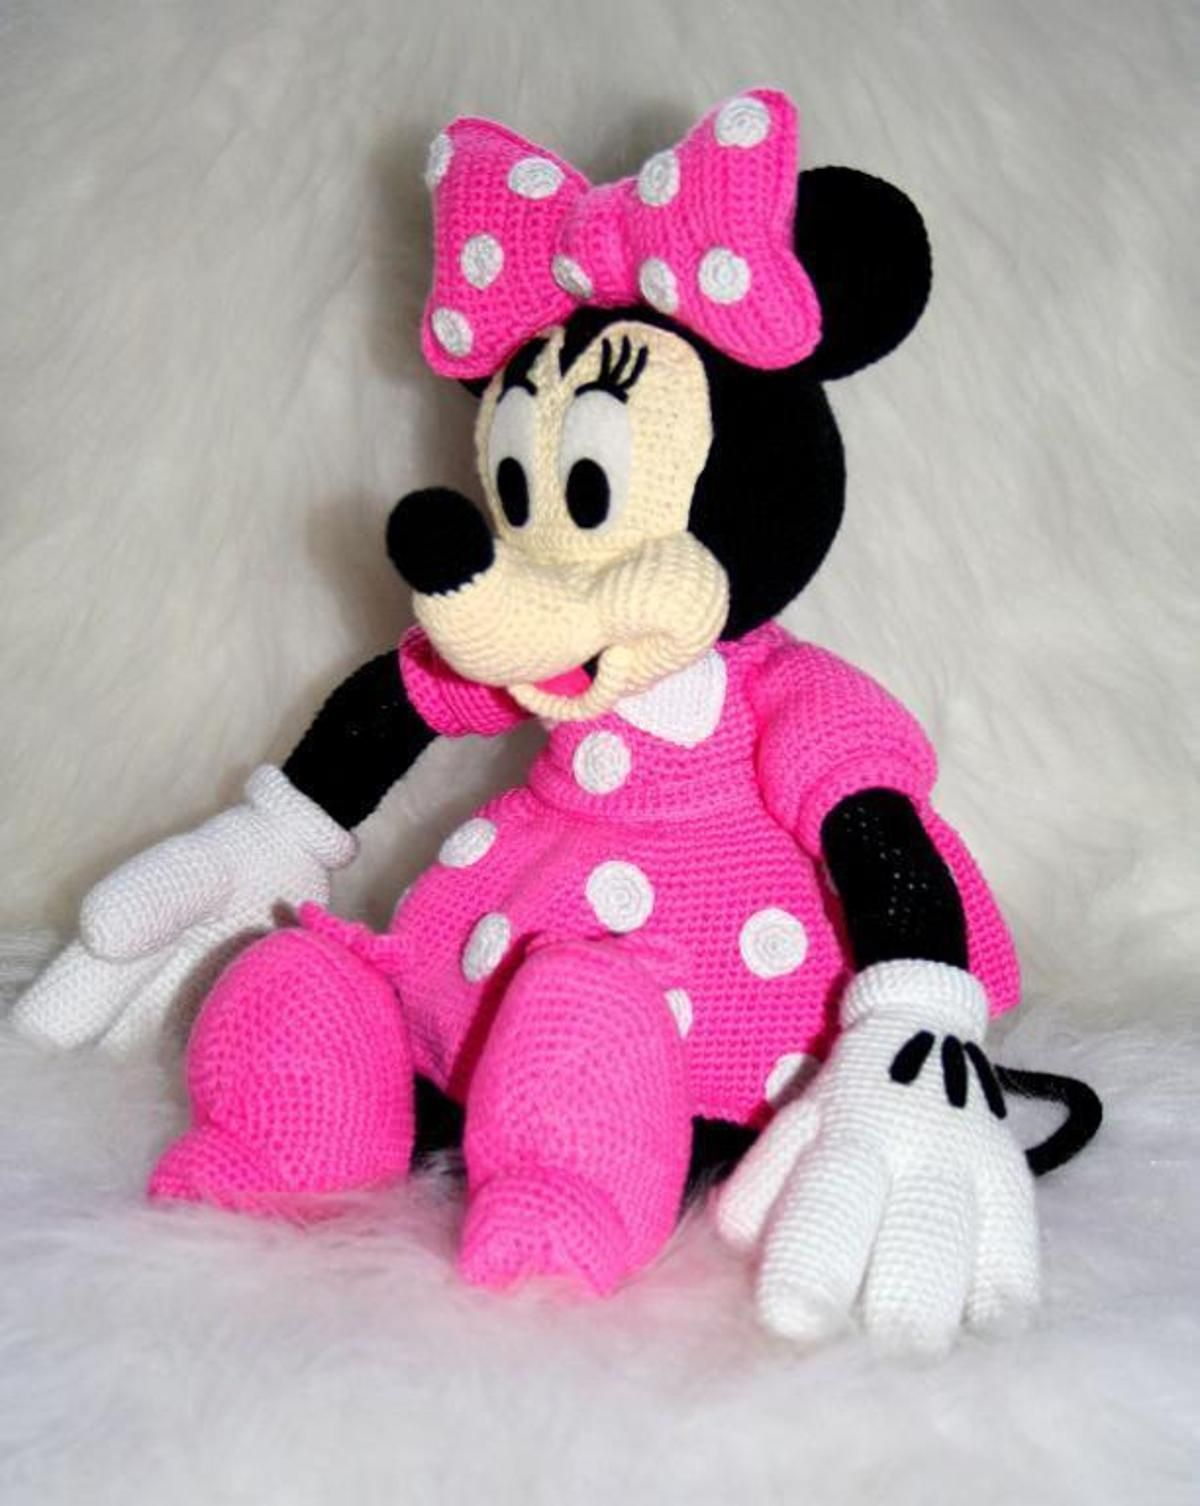 Disney Minnie mouse amigurumi crochet